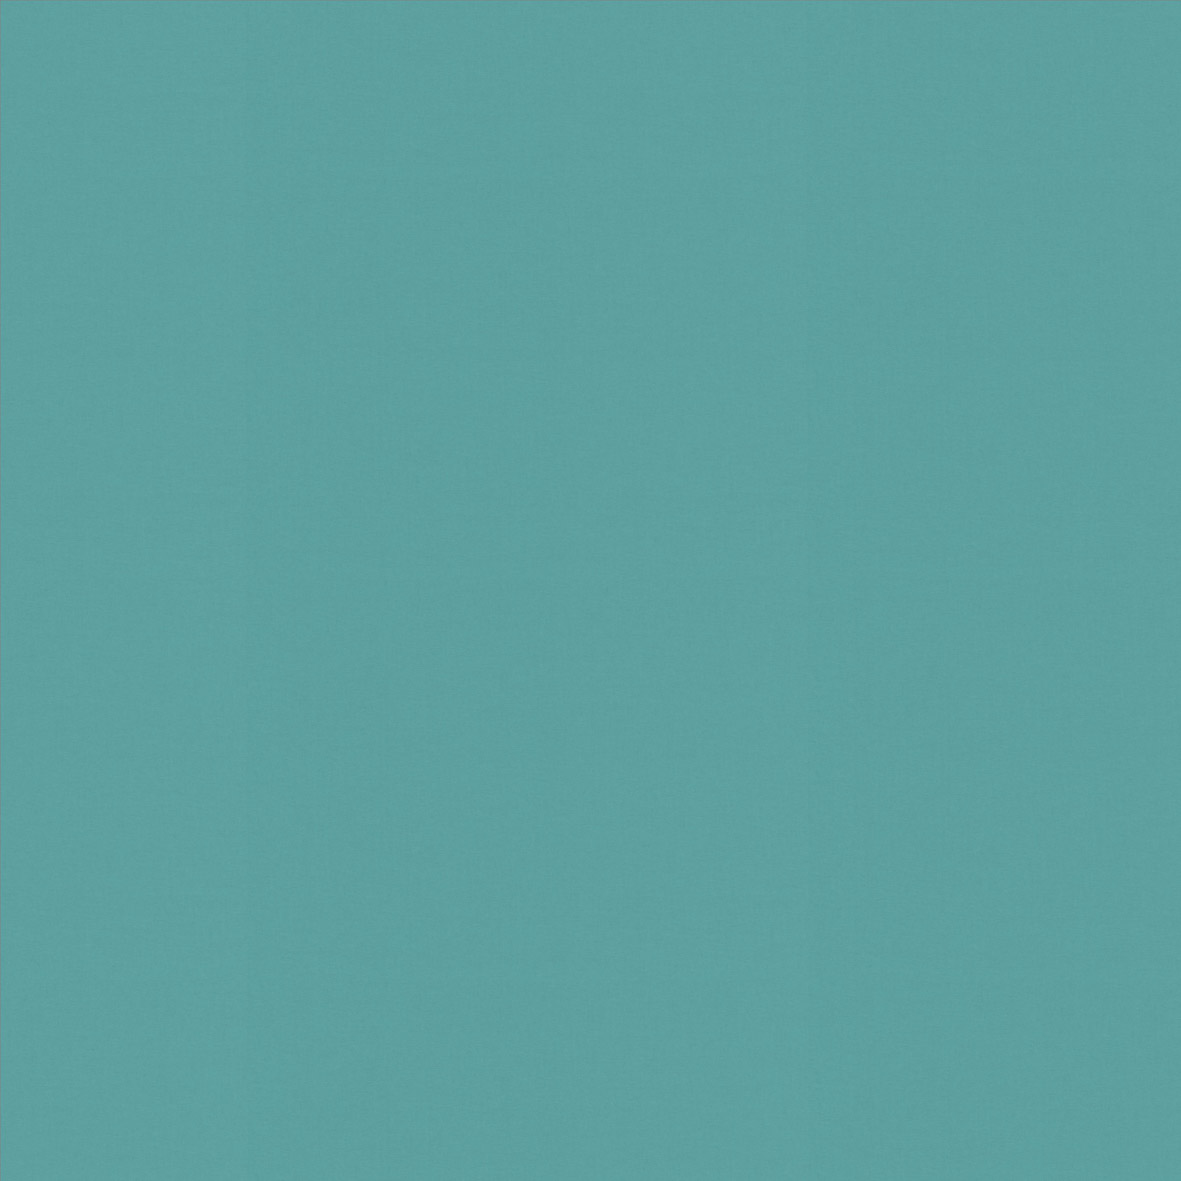 Roller_Swatch_Banlight_Duo_FR_Turquoise_RE0325